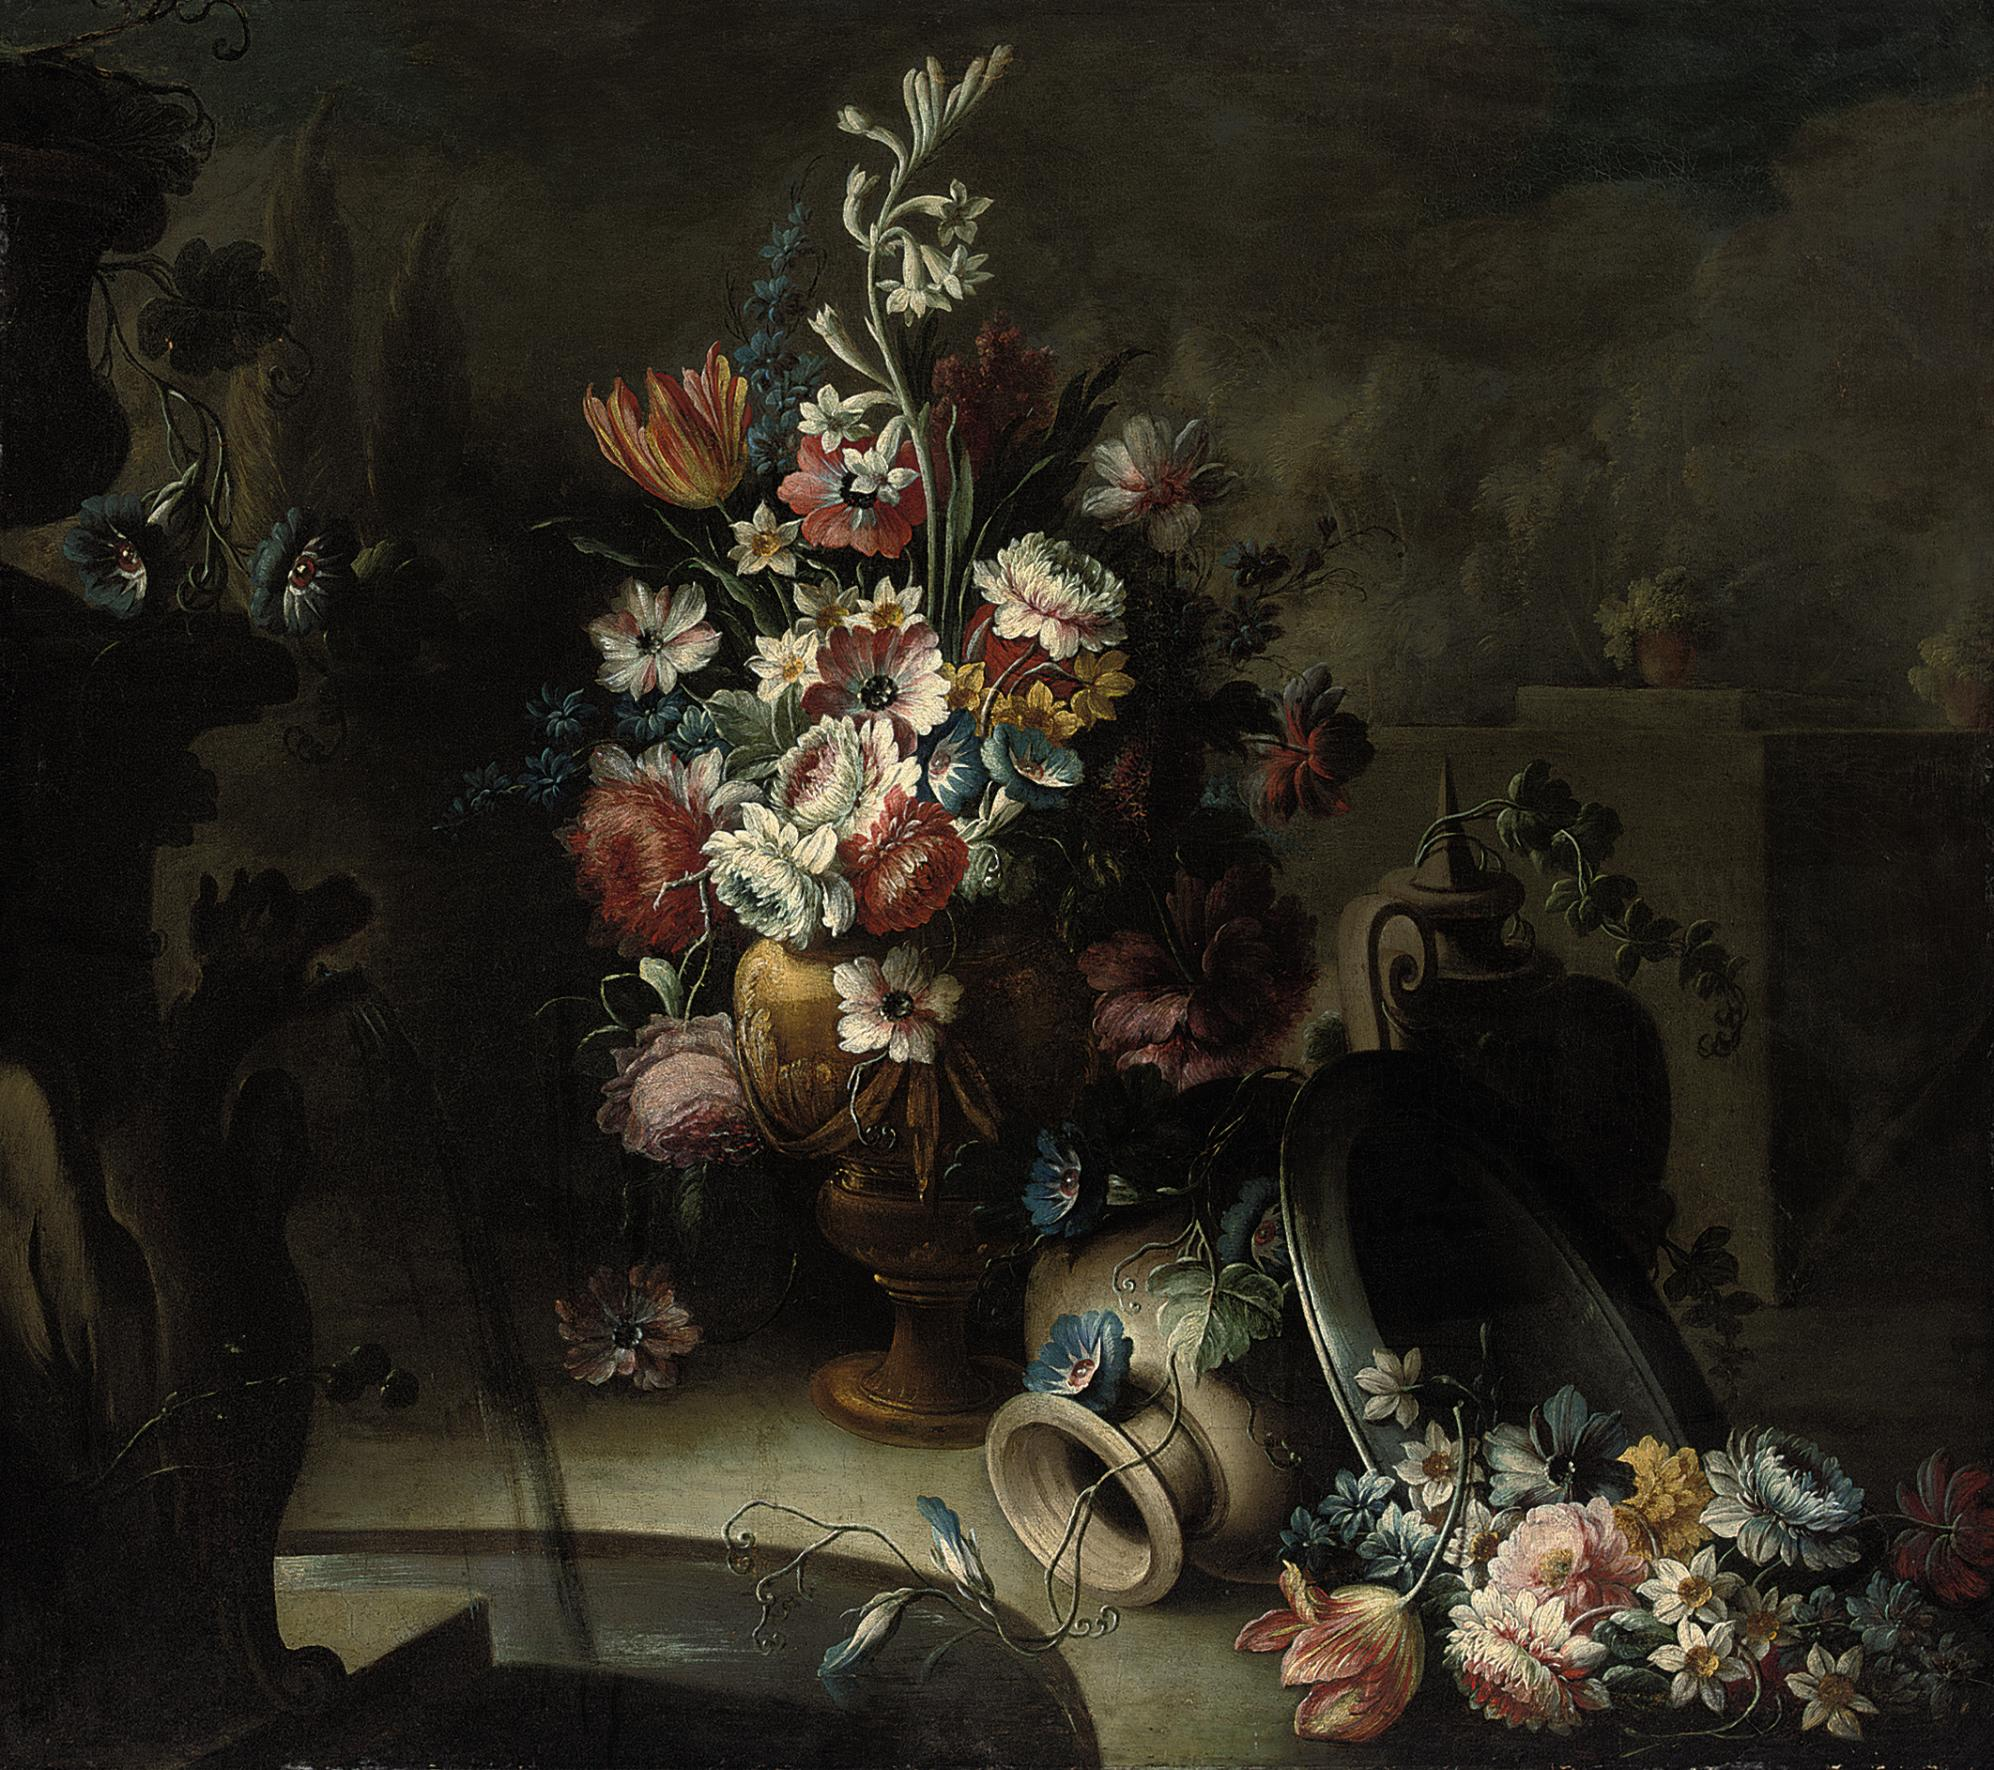 Roses, tulips, morning glory, narcissi and other flowers in a sculpted urn, with two vases and a plate with flowers, beside a fountain